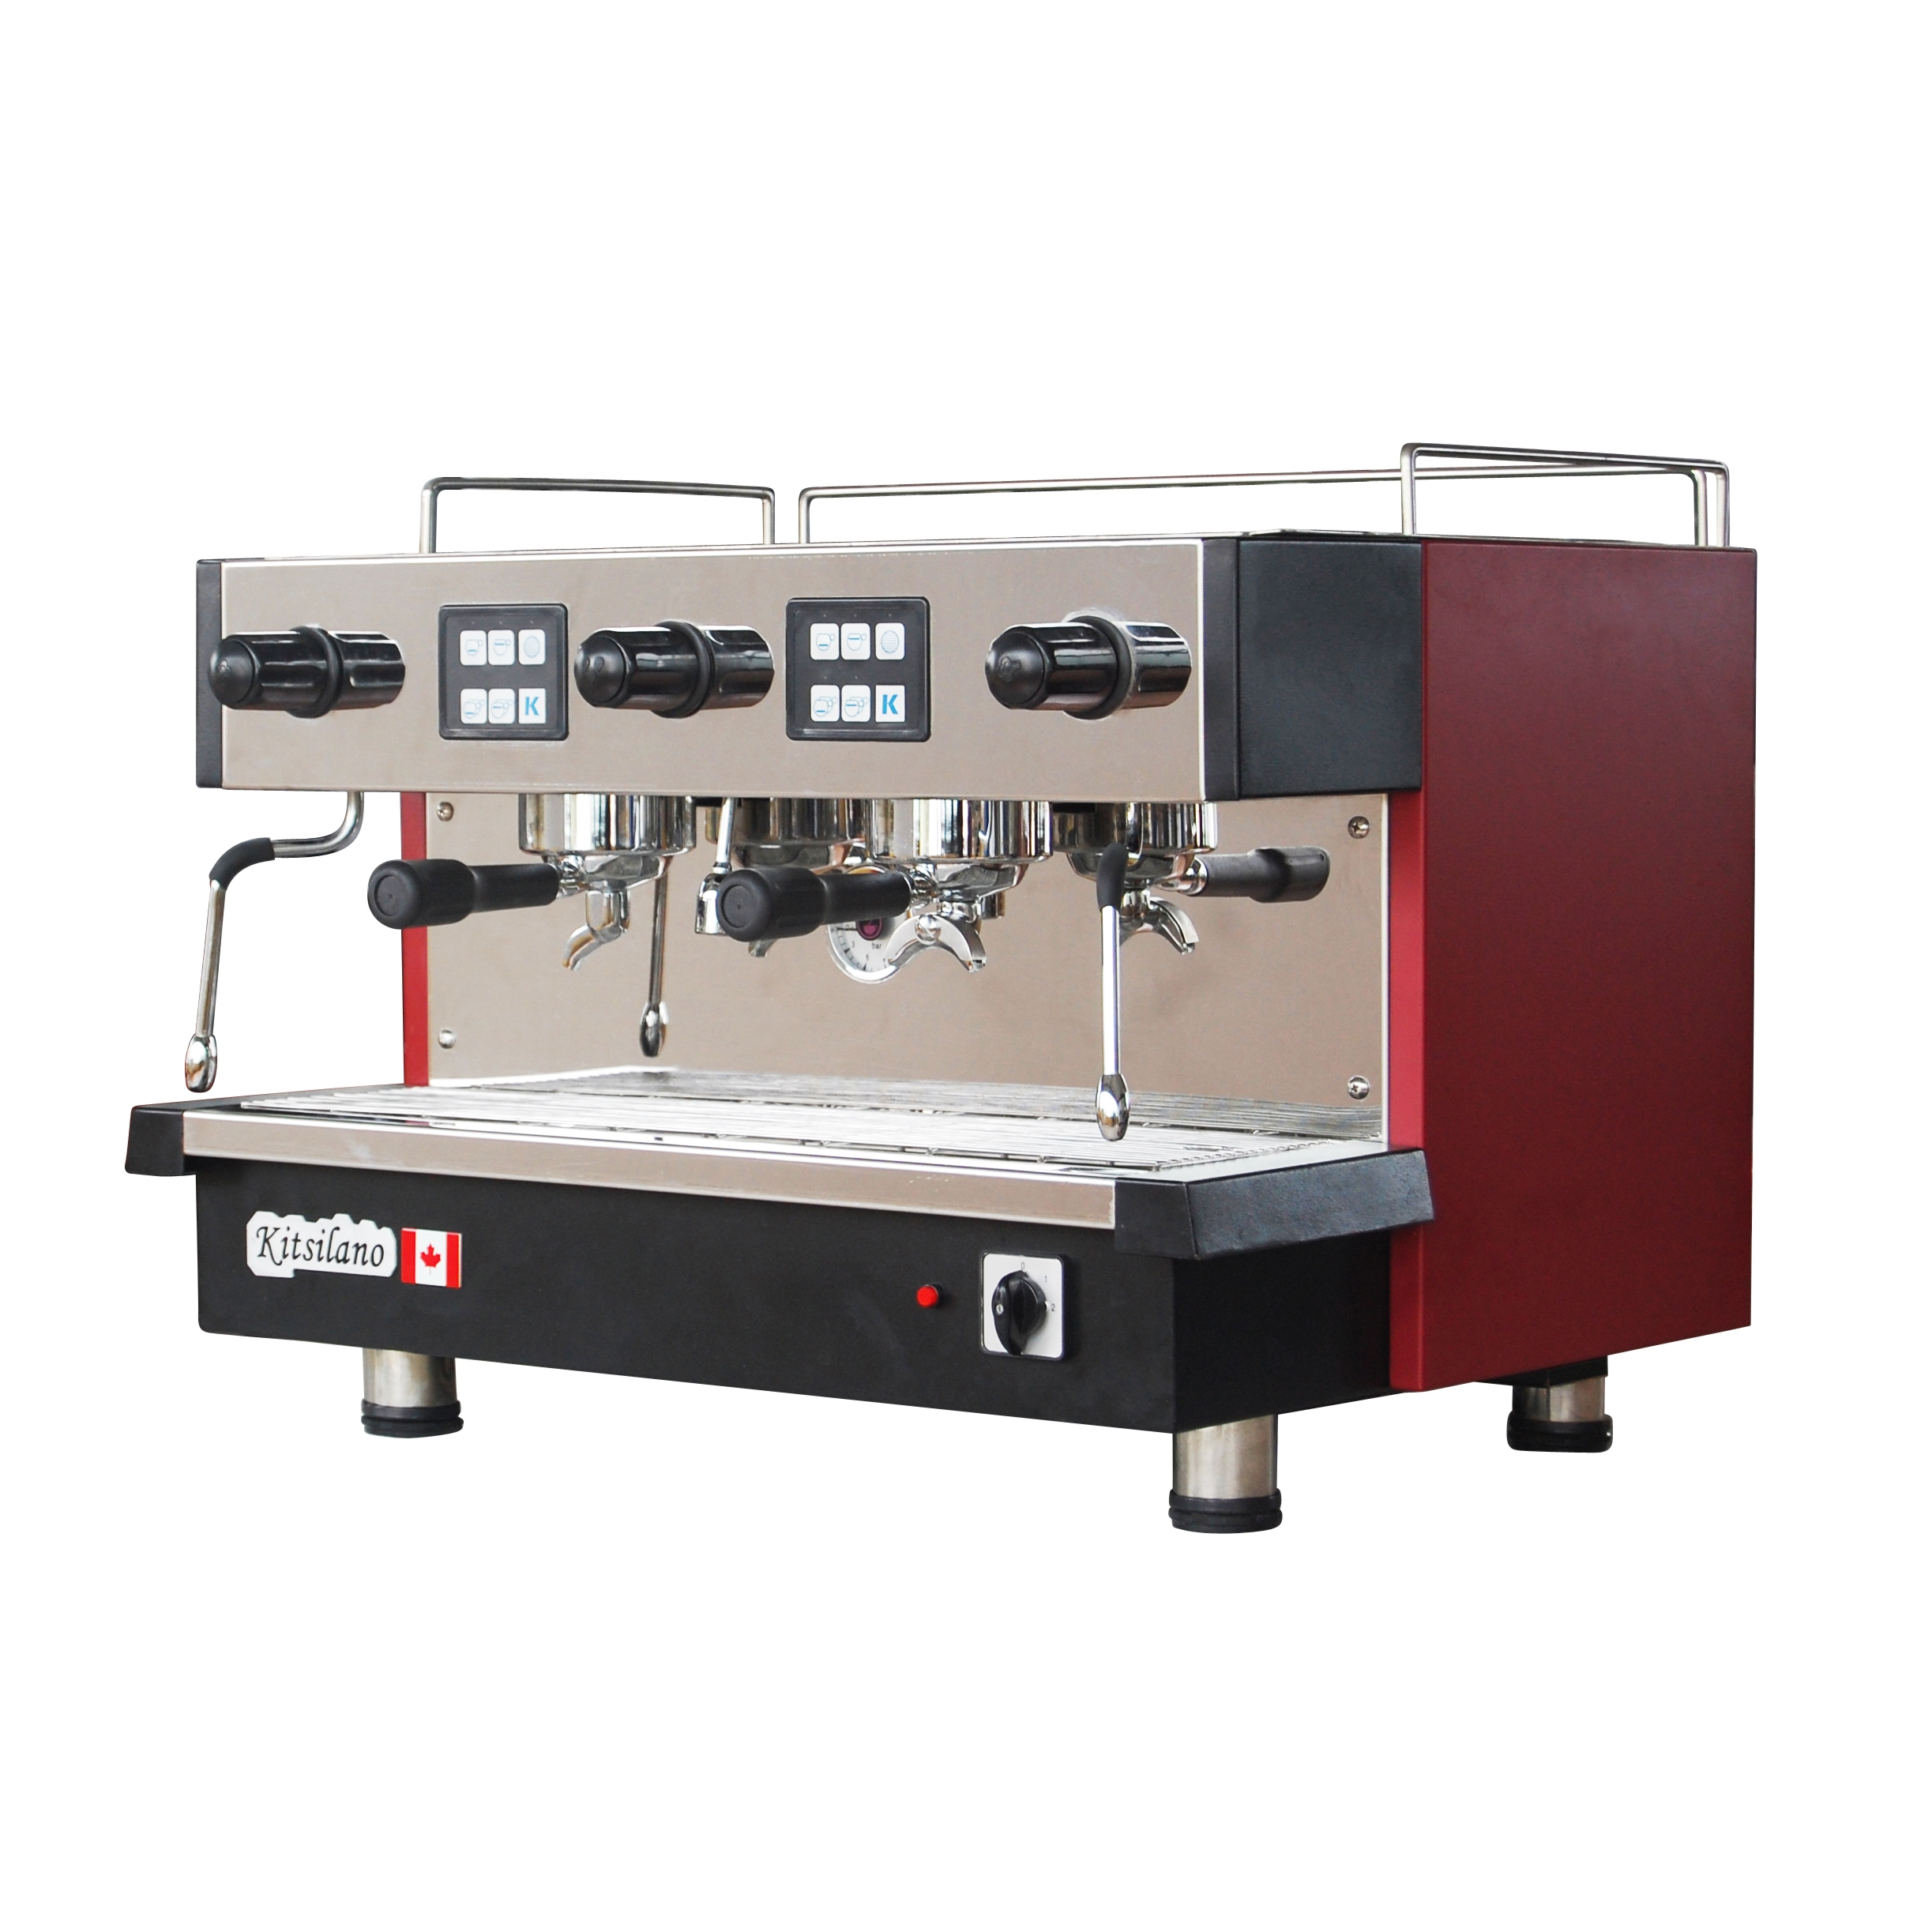 KT-11.2 Espresso coffee machine commercial use professional coffee maker American coffee Latte Cappuccino Kitsilano